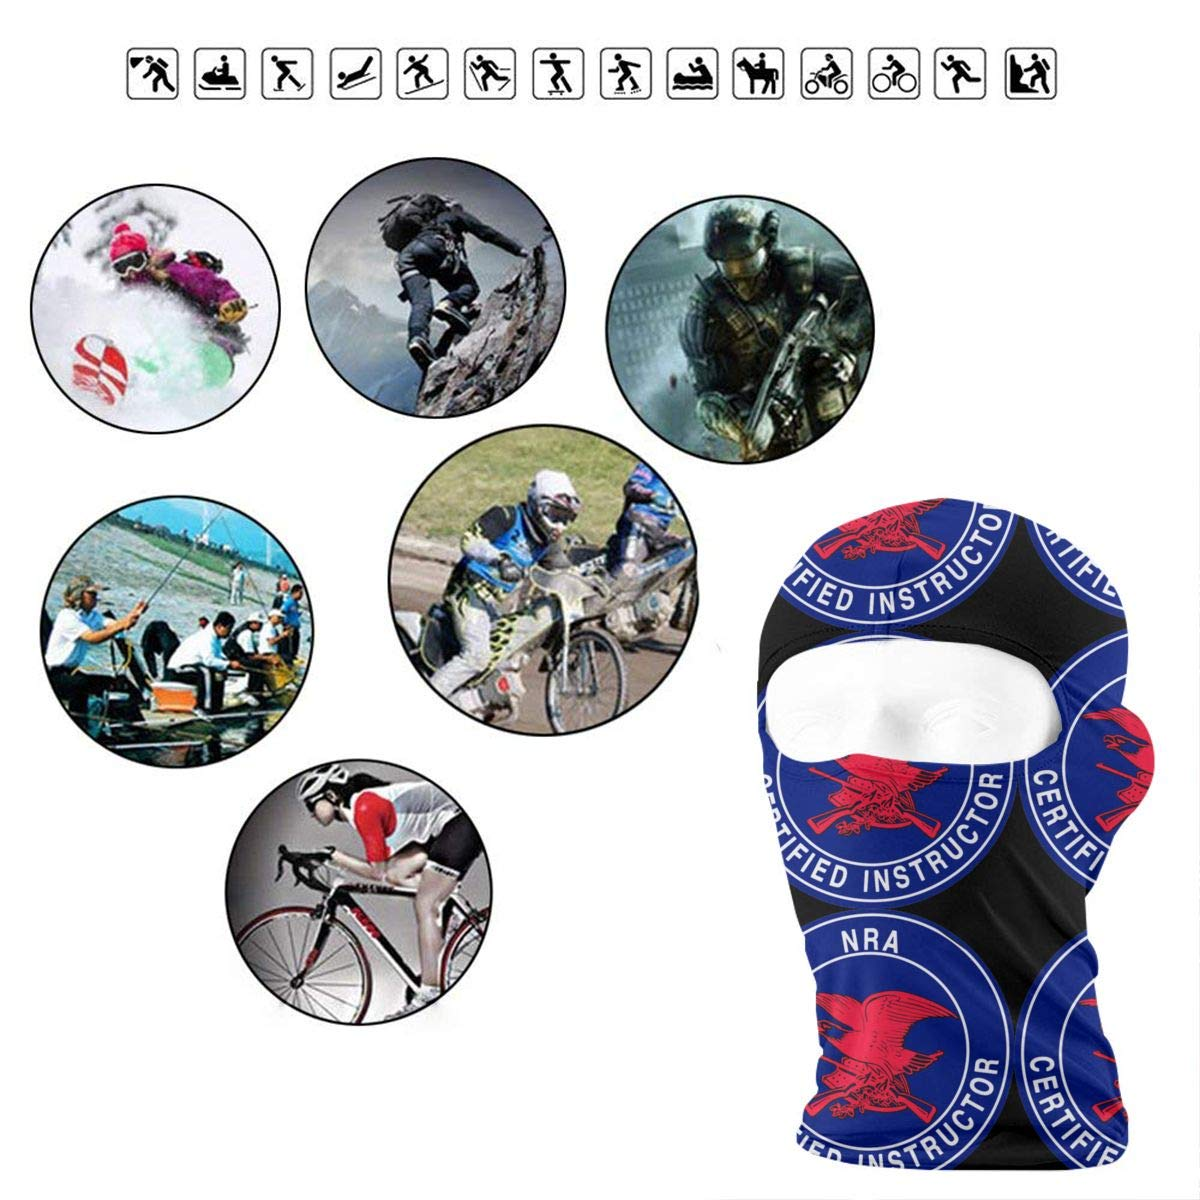 NRA Certified Instructor Full Face Mask Hood,Outdoor Cycling Ski Motorcycle Balaclava Mask Sunscreen Hat Windproof Cap